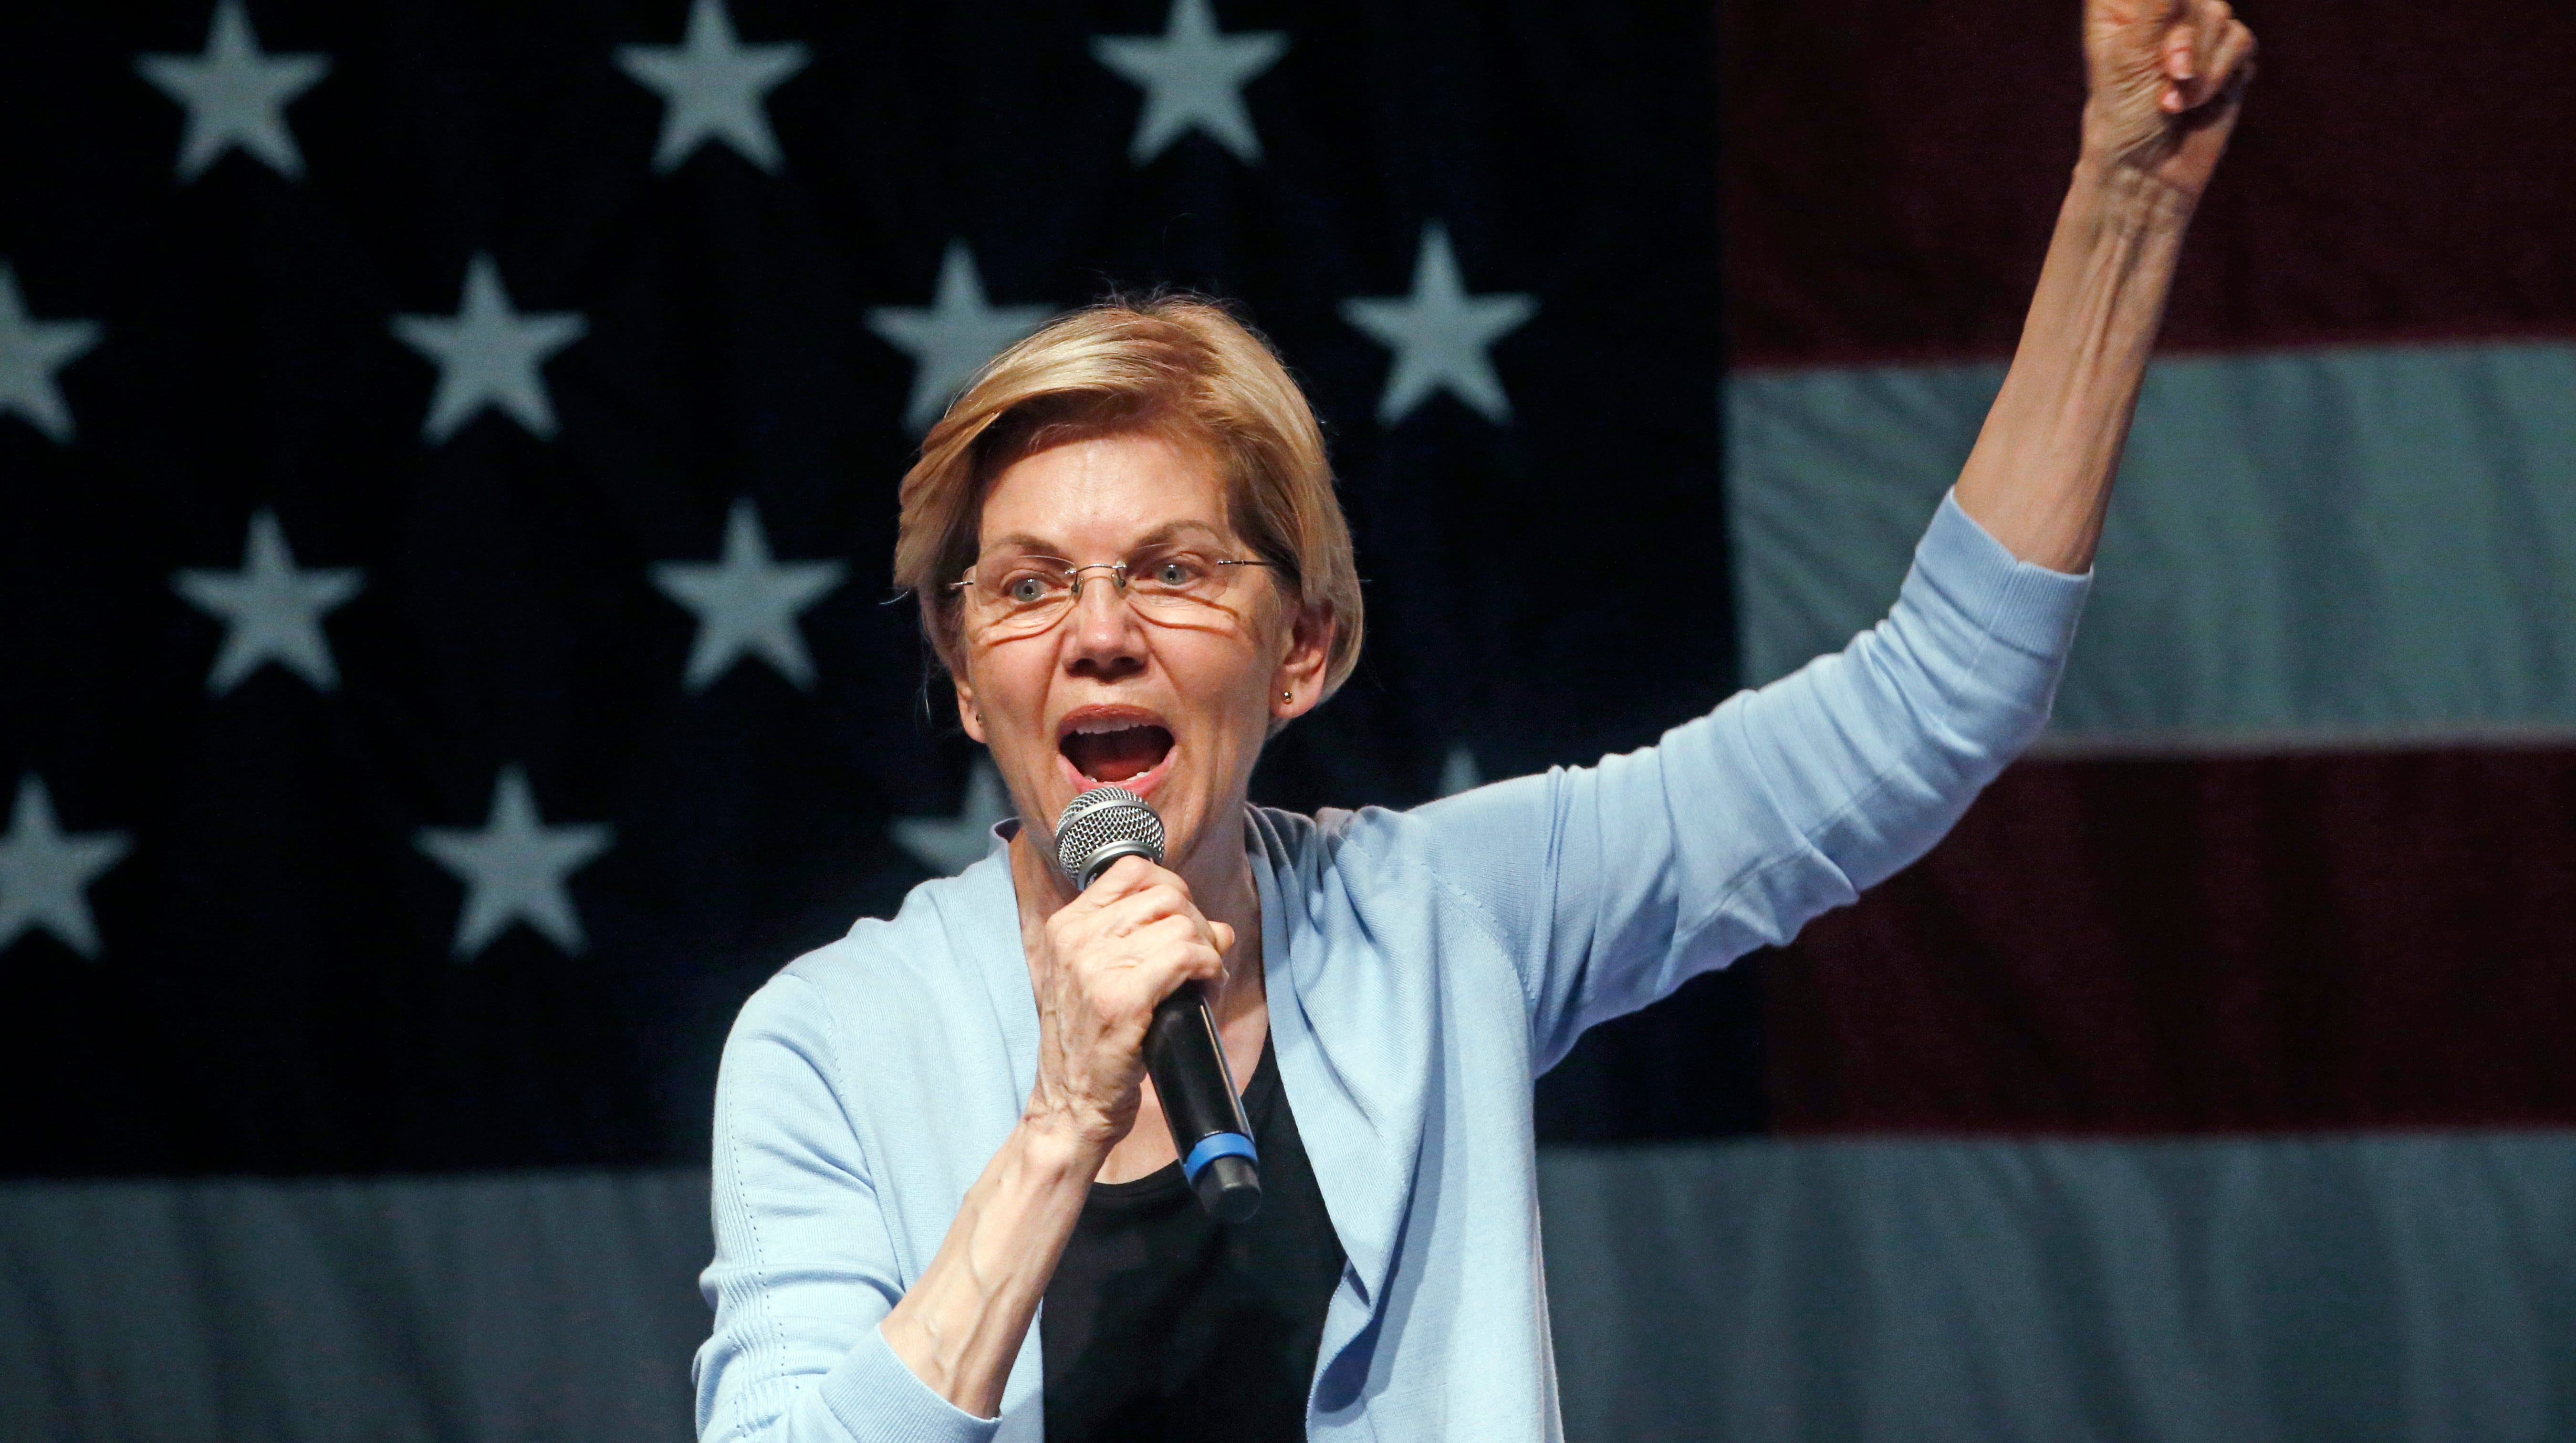 Democratic presidential candidate Sen. Elizabeth Warren, D-Mass., speaks during a campaign rally Wednesday, April 17, 2019, in Salt Lake City.